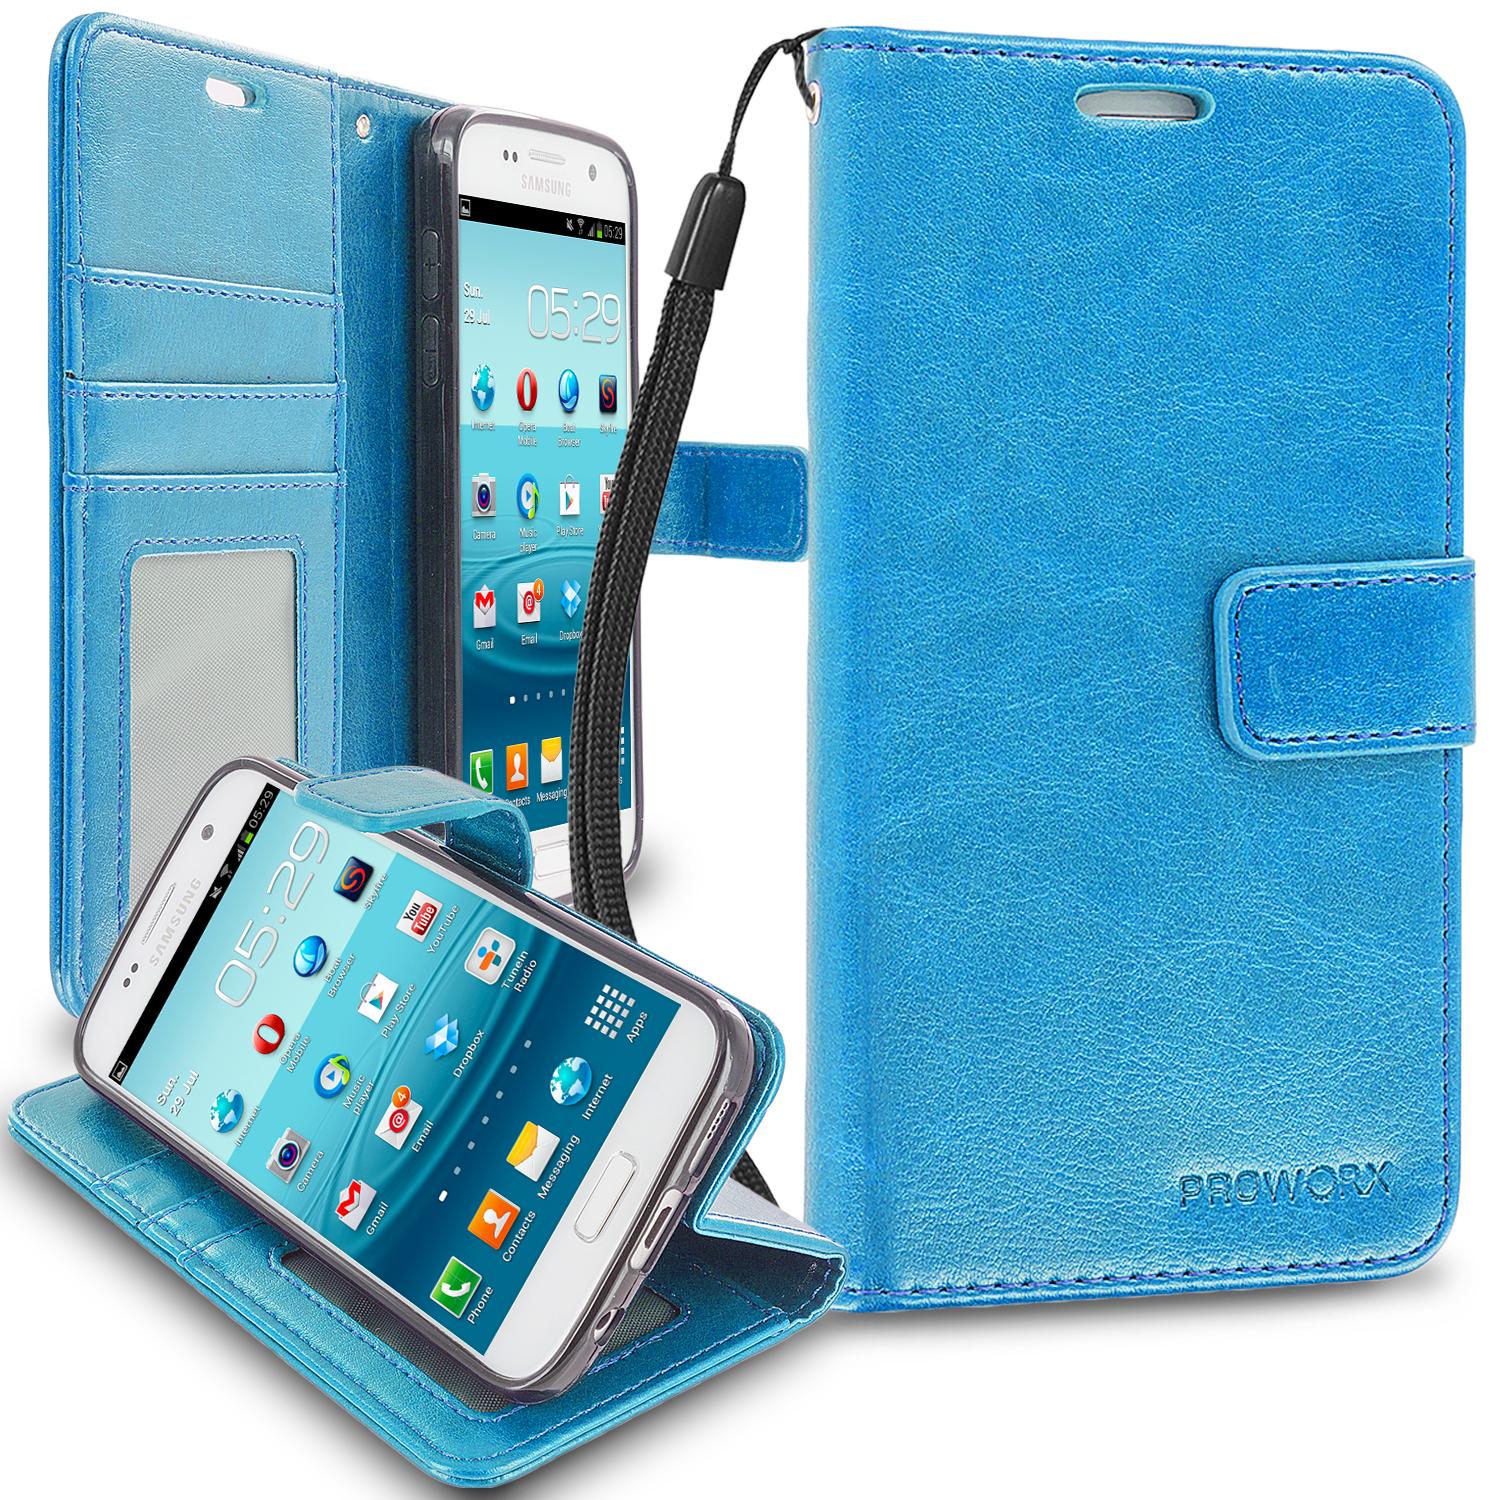 Samsung Galaxy S7 Baby Blue ProWorx Wallet Case Luxury PU Leather Case Cover With Card Slots & Stand